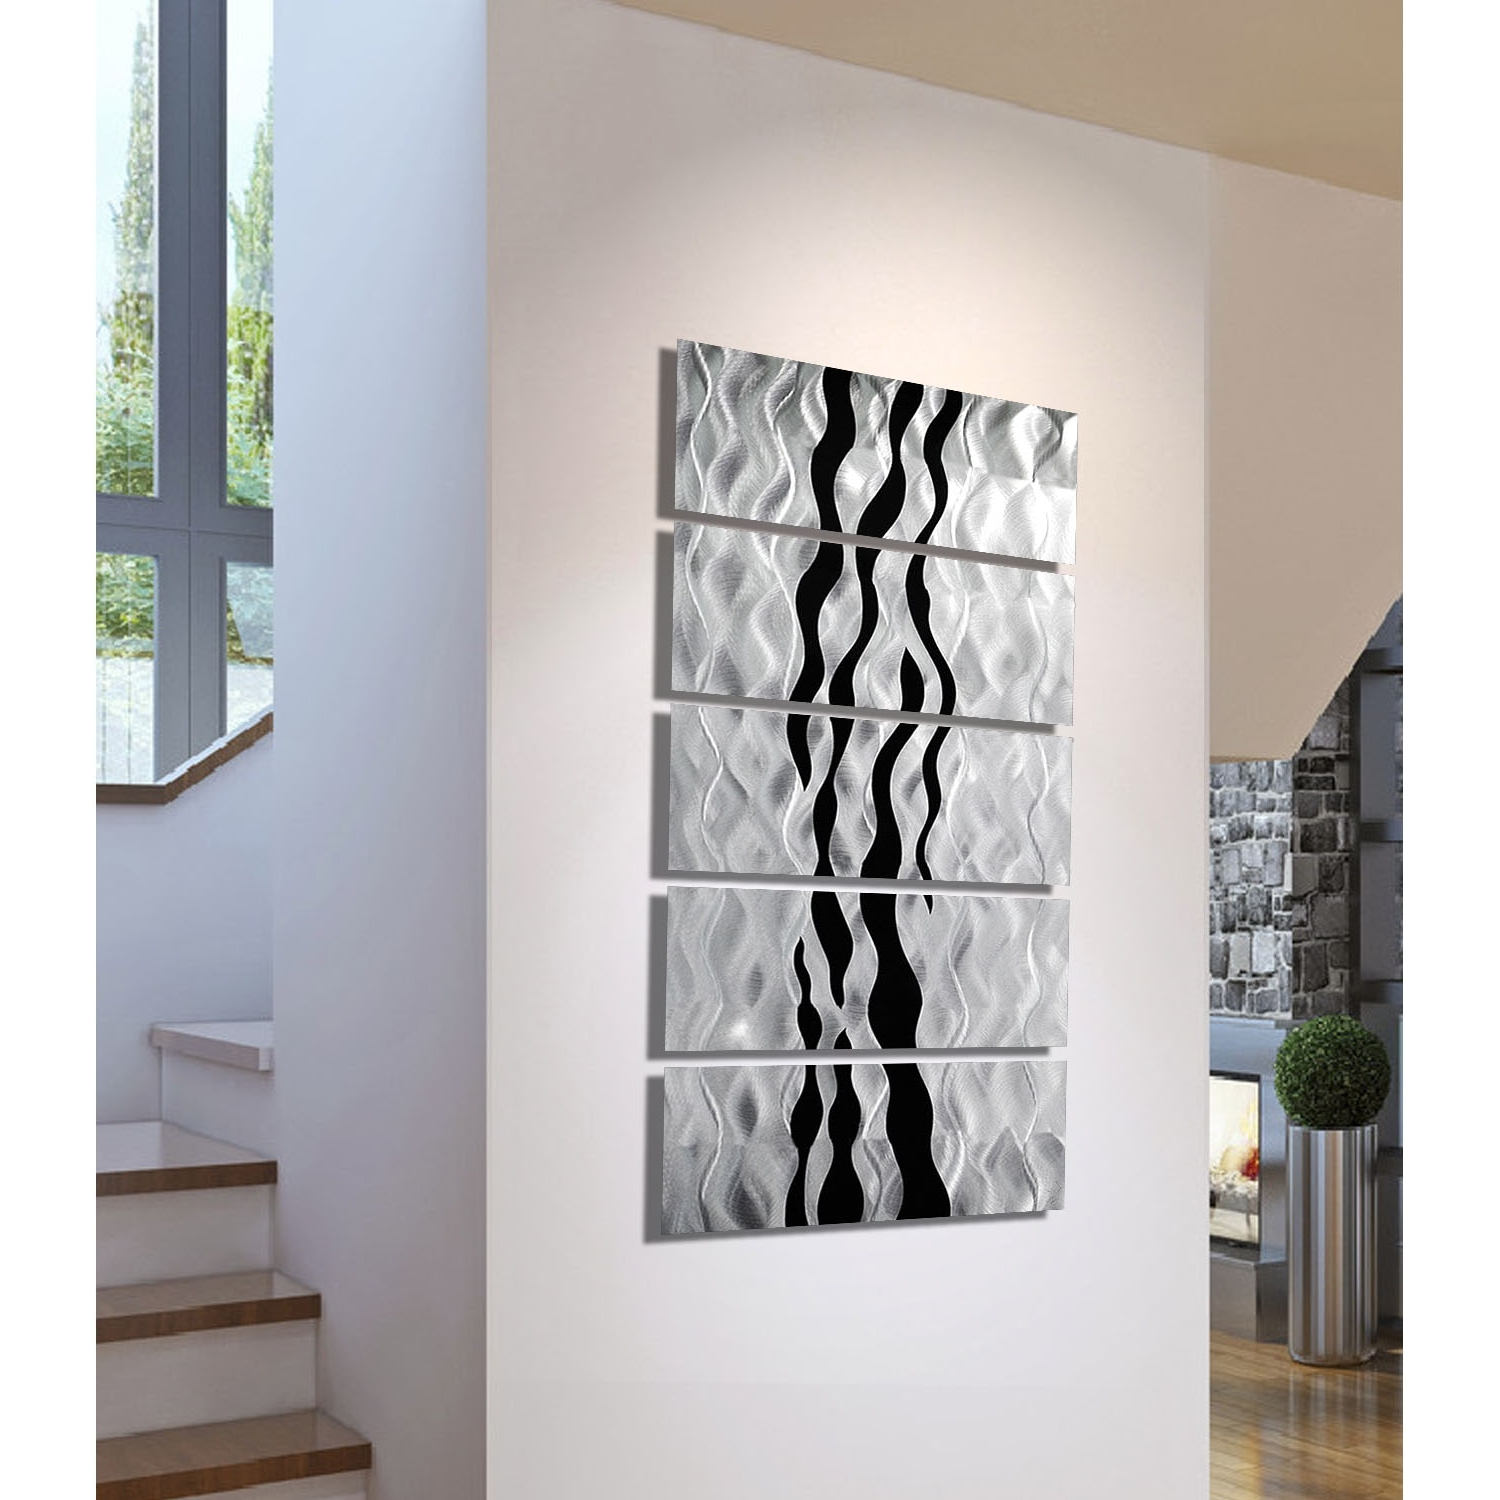 Onyx Oceana – Silver And Black Metal Wall Art – 5 Panel Wall Décor In 2018 Metal Wall Art (View 14 of 15)